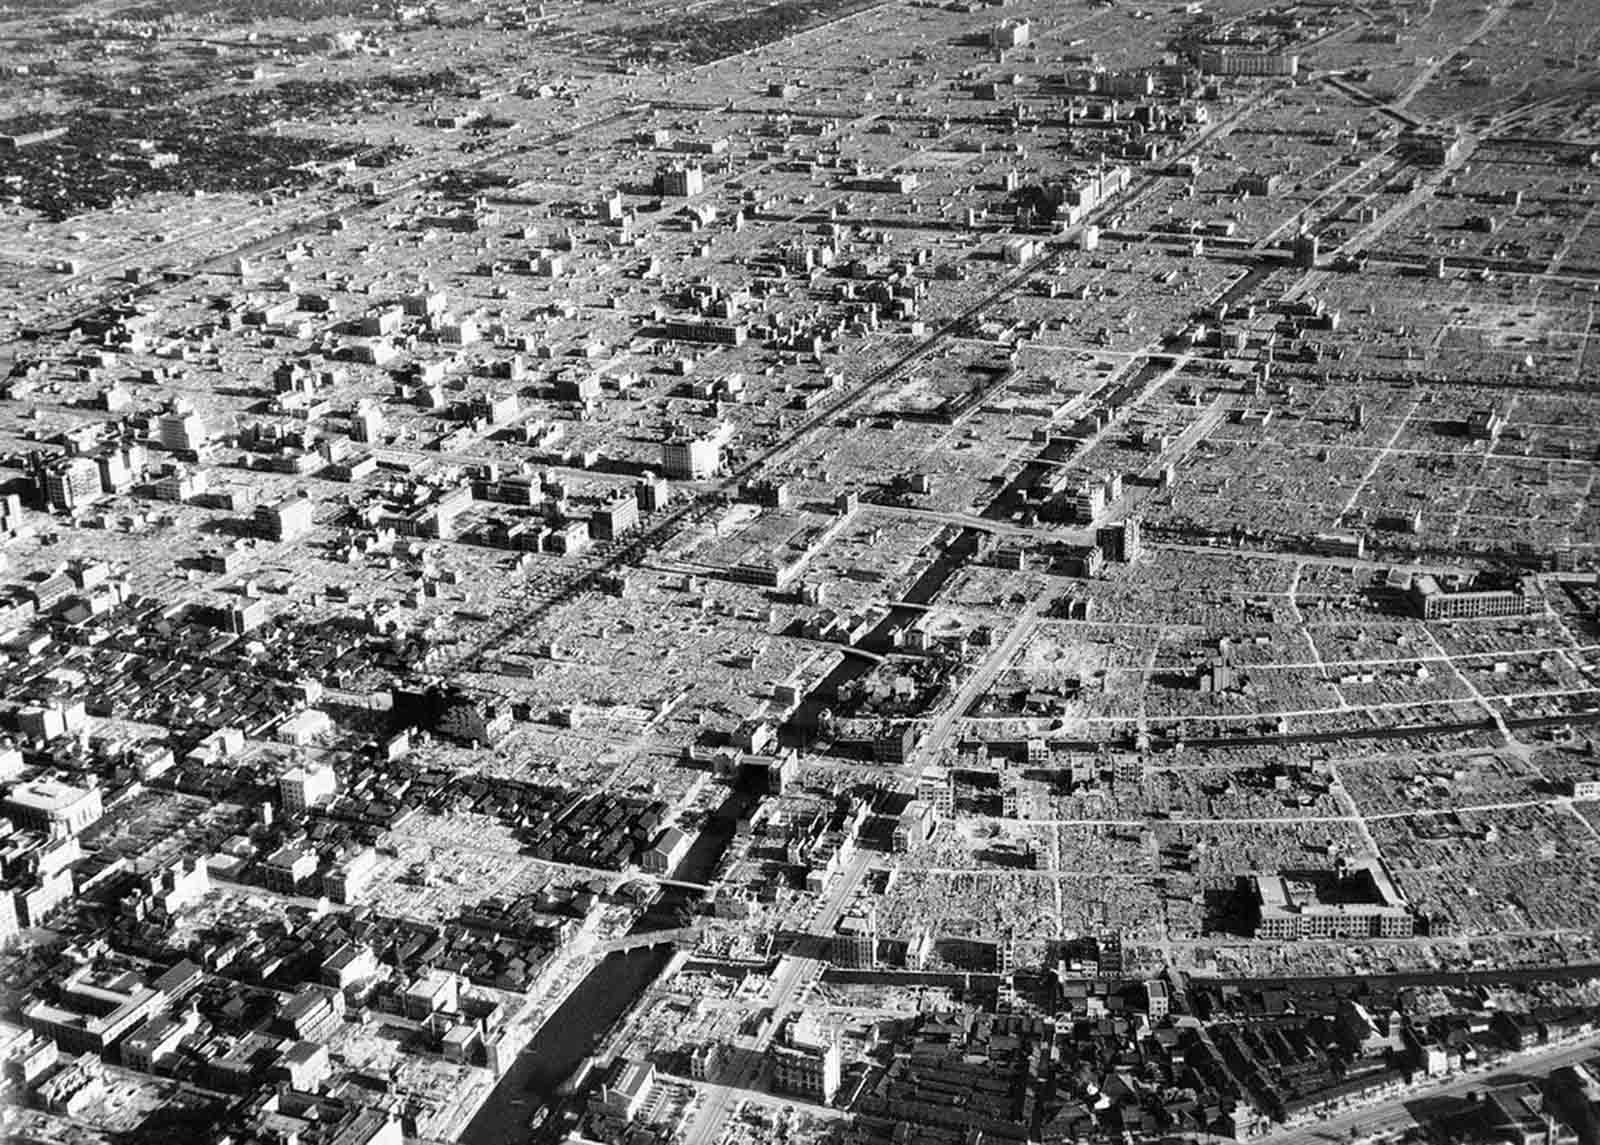 The terrible damage done to Tokyo by American bombers can be seen in what was once a residential district in the Japanese capital, viewed months later, on September 10, 1945. Only large well constructed buildings remain intact